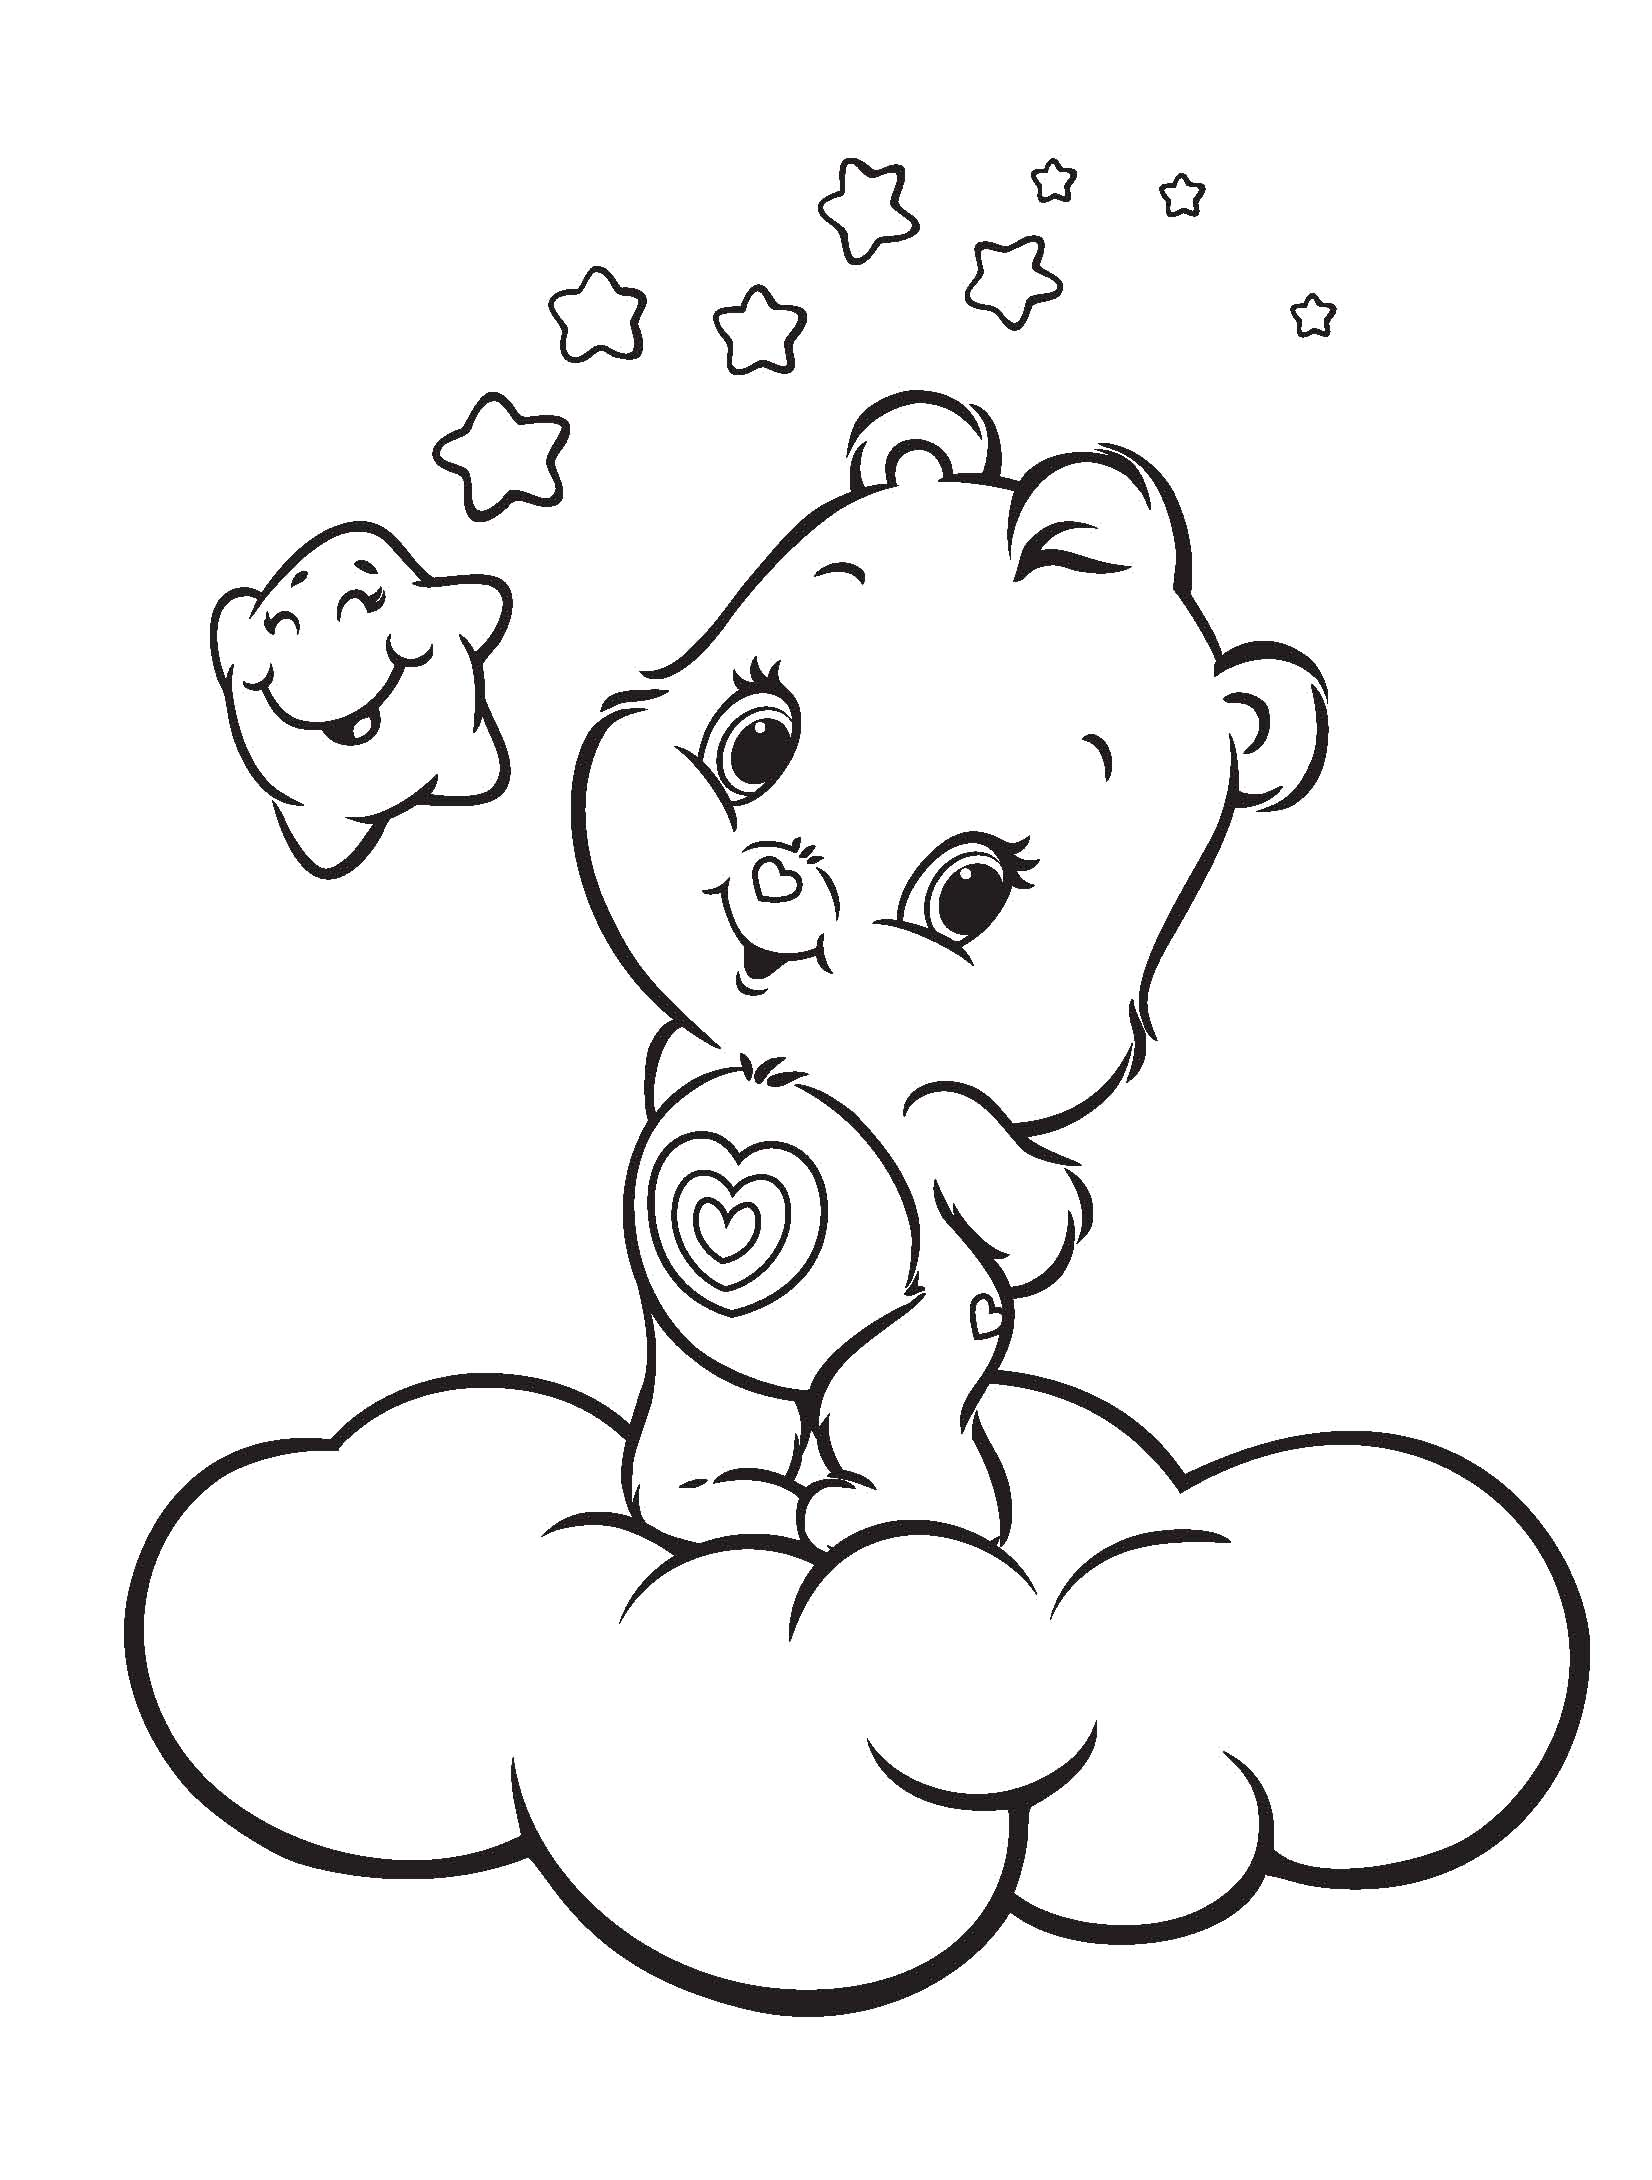 carebear coloring pages - photo#35